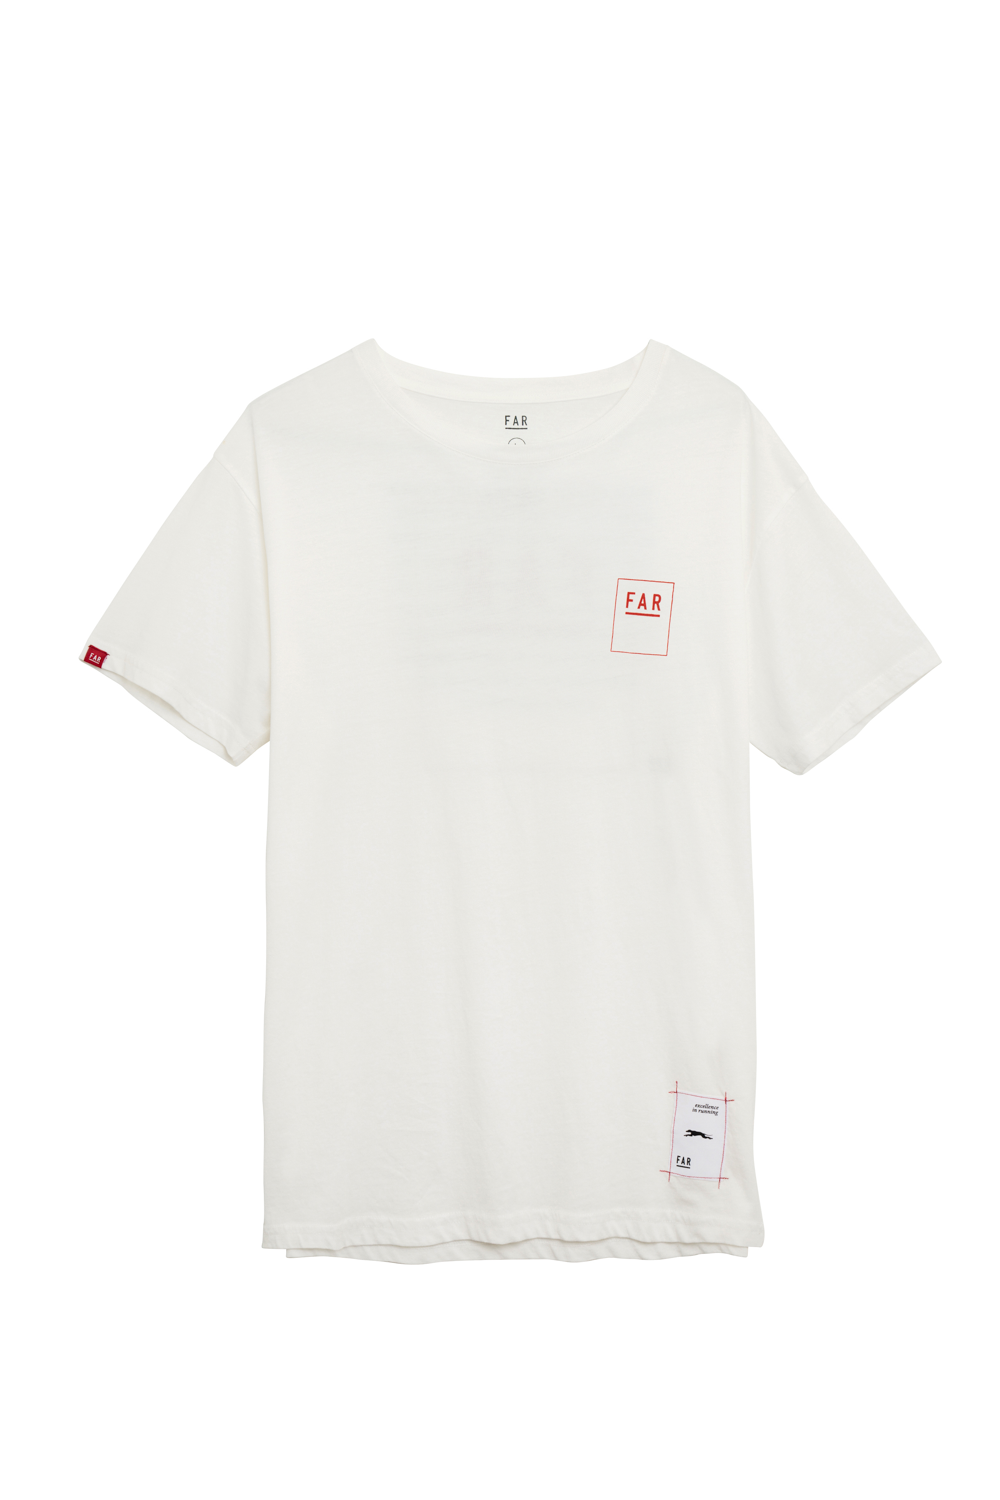 Manifesto Organic Cotton Tee - White